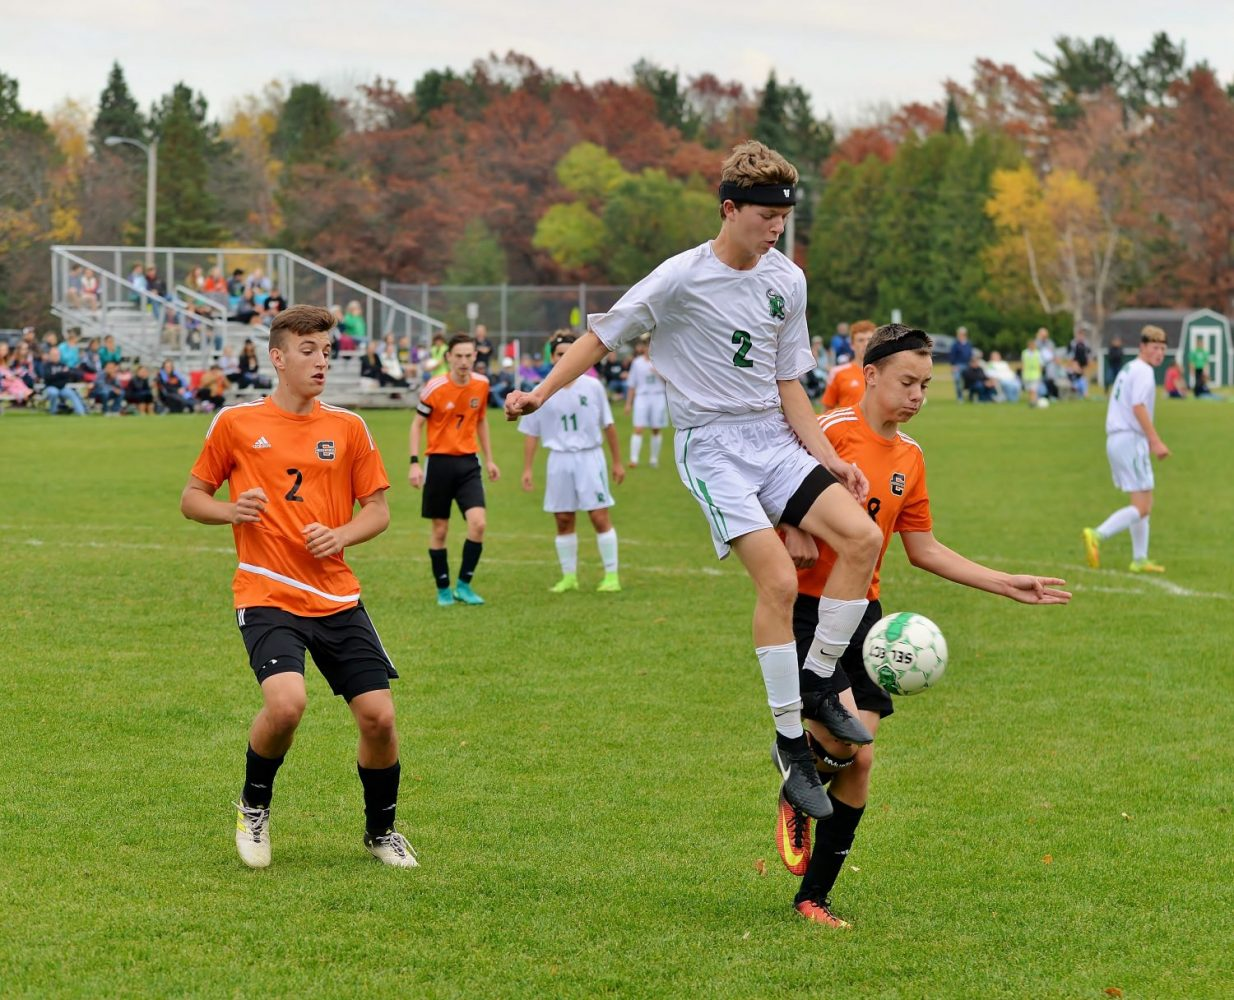 At right, the Hodags' Matthew Von Oepen (2) jumps up with the ball in Saturday's WIAA Division 3 Regional title game against Clintonville.